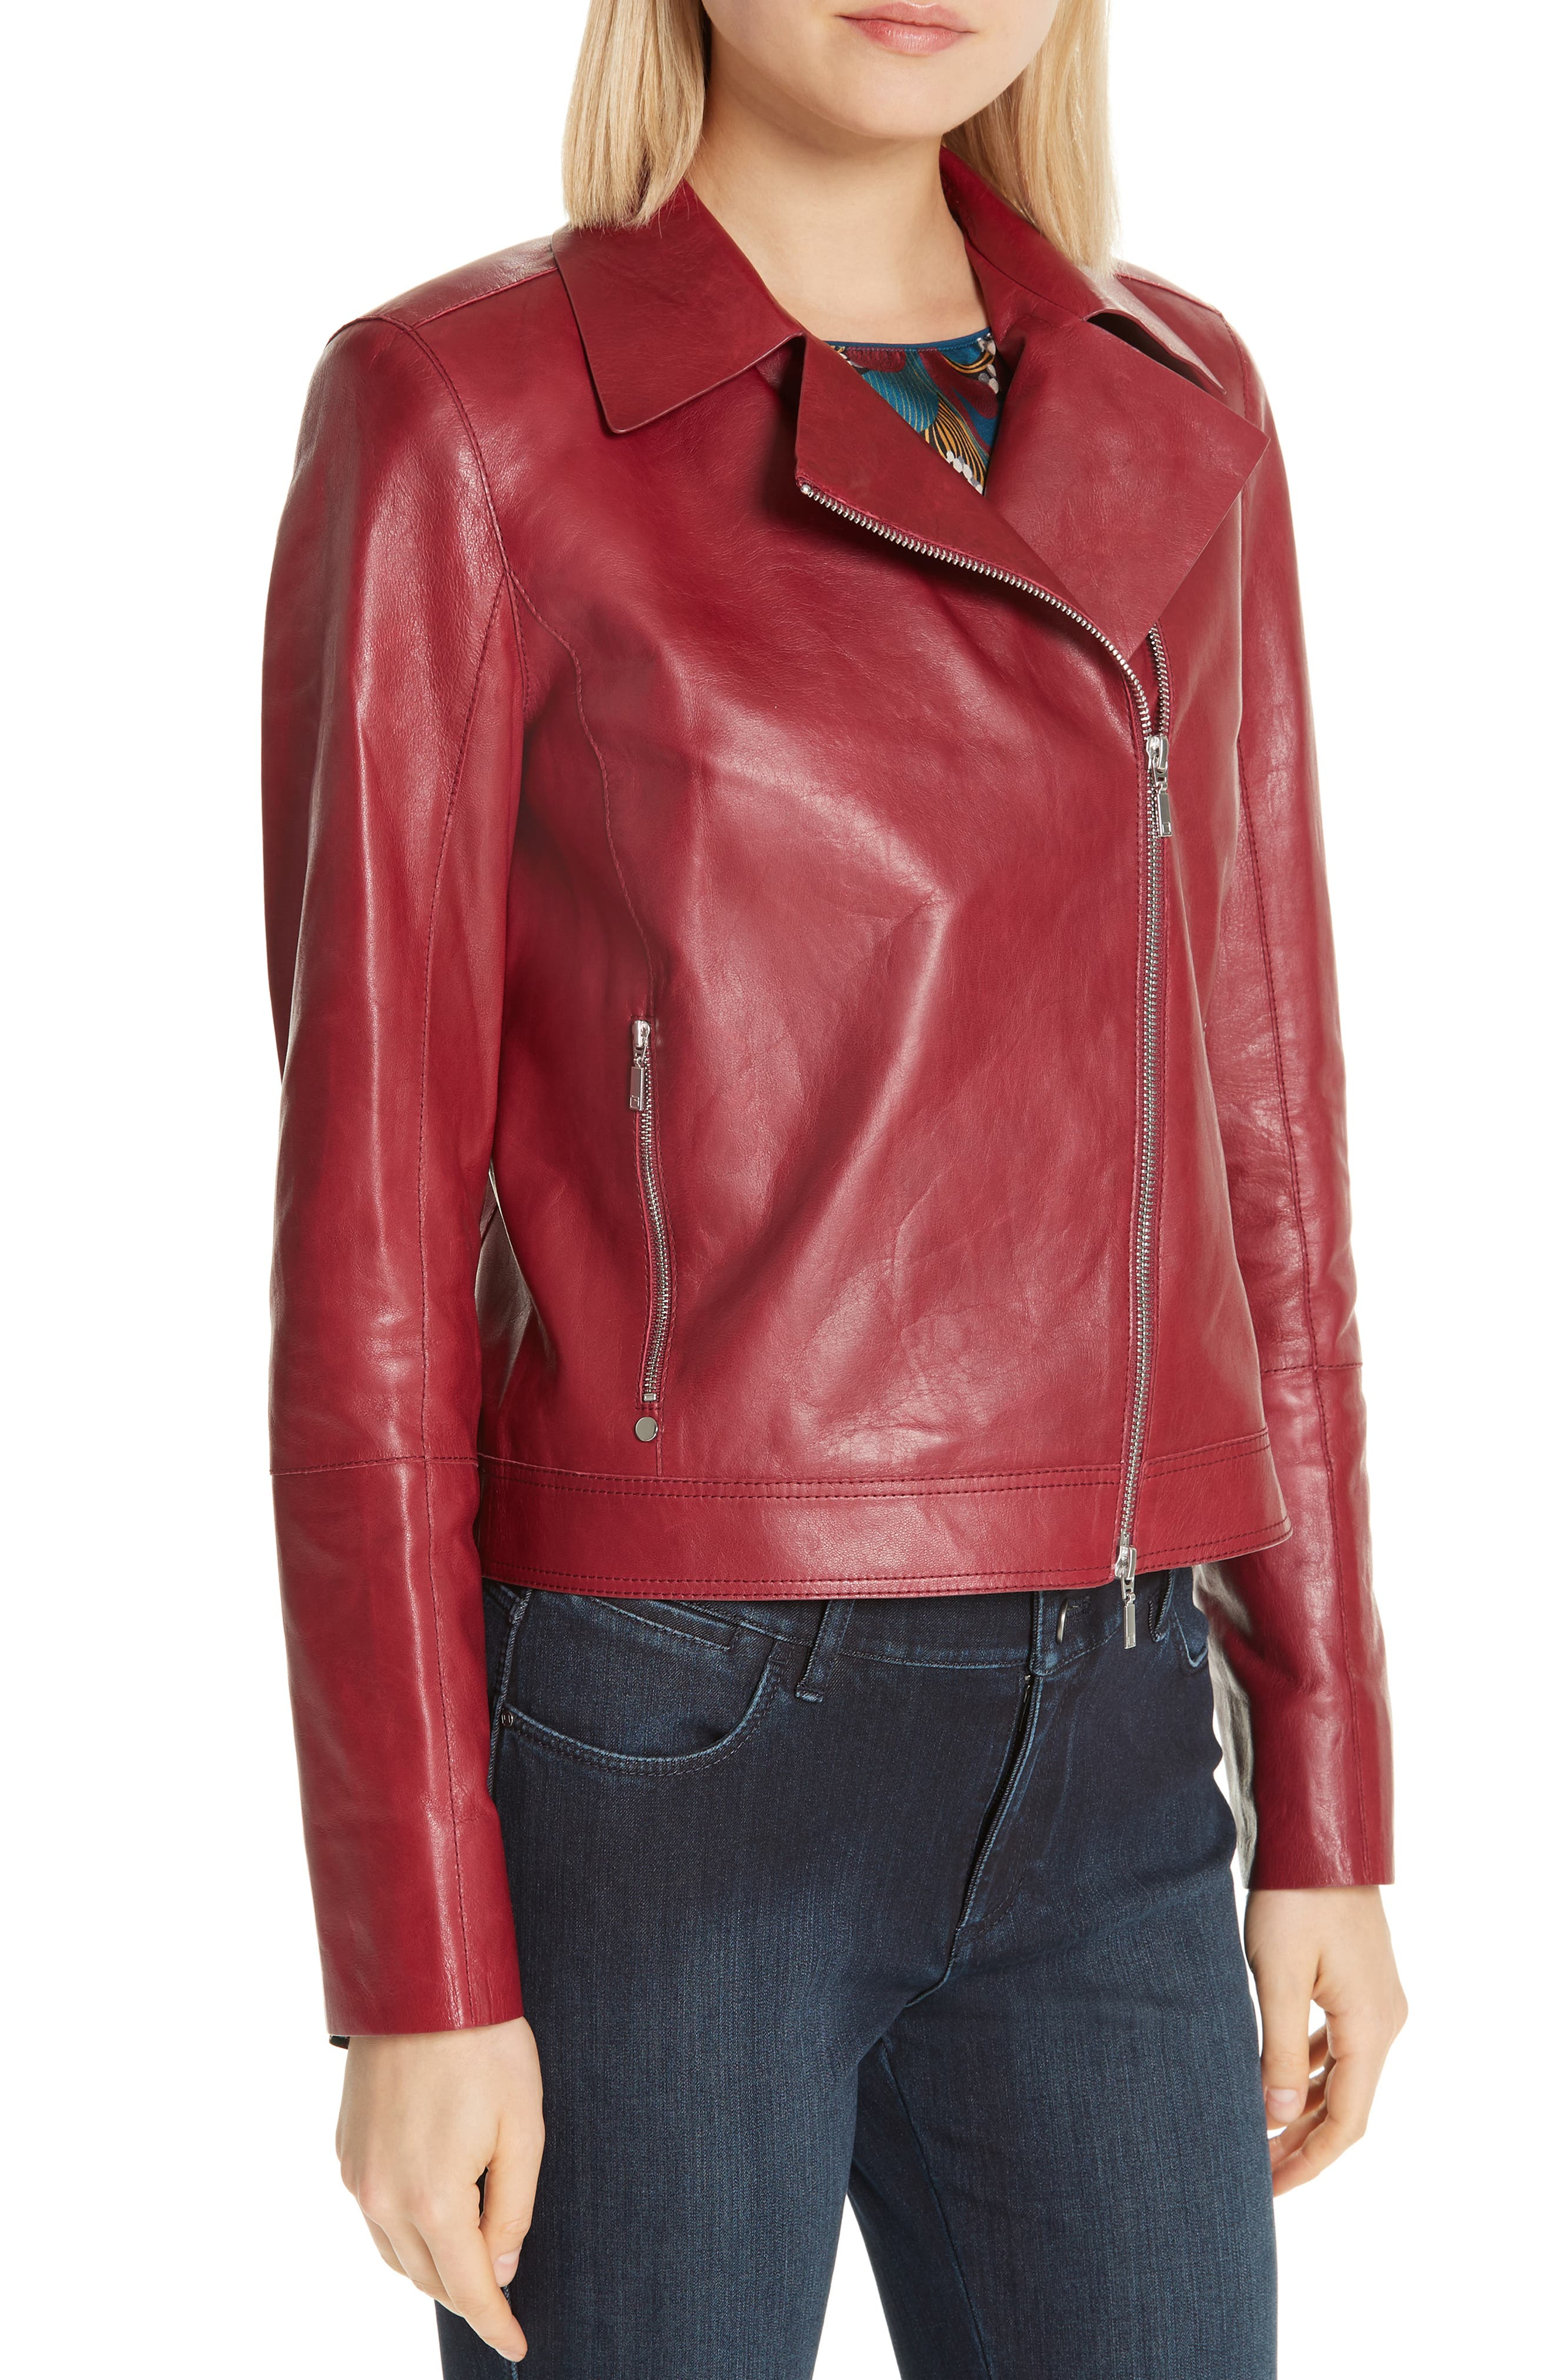 LAFAYETTE 148 NEW YORK, Marykate Leather Moto Jacket, Alternate thumbnail 4, color, 600